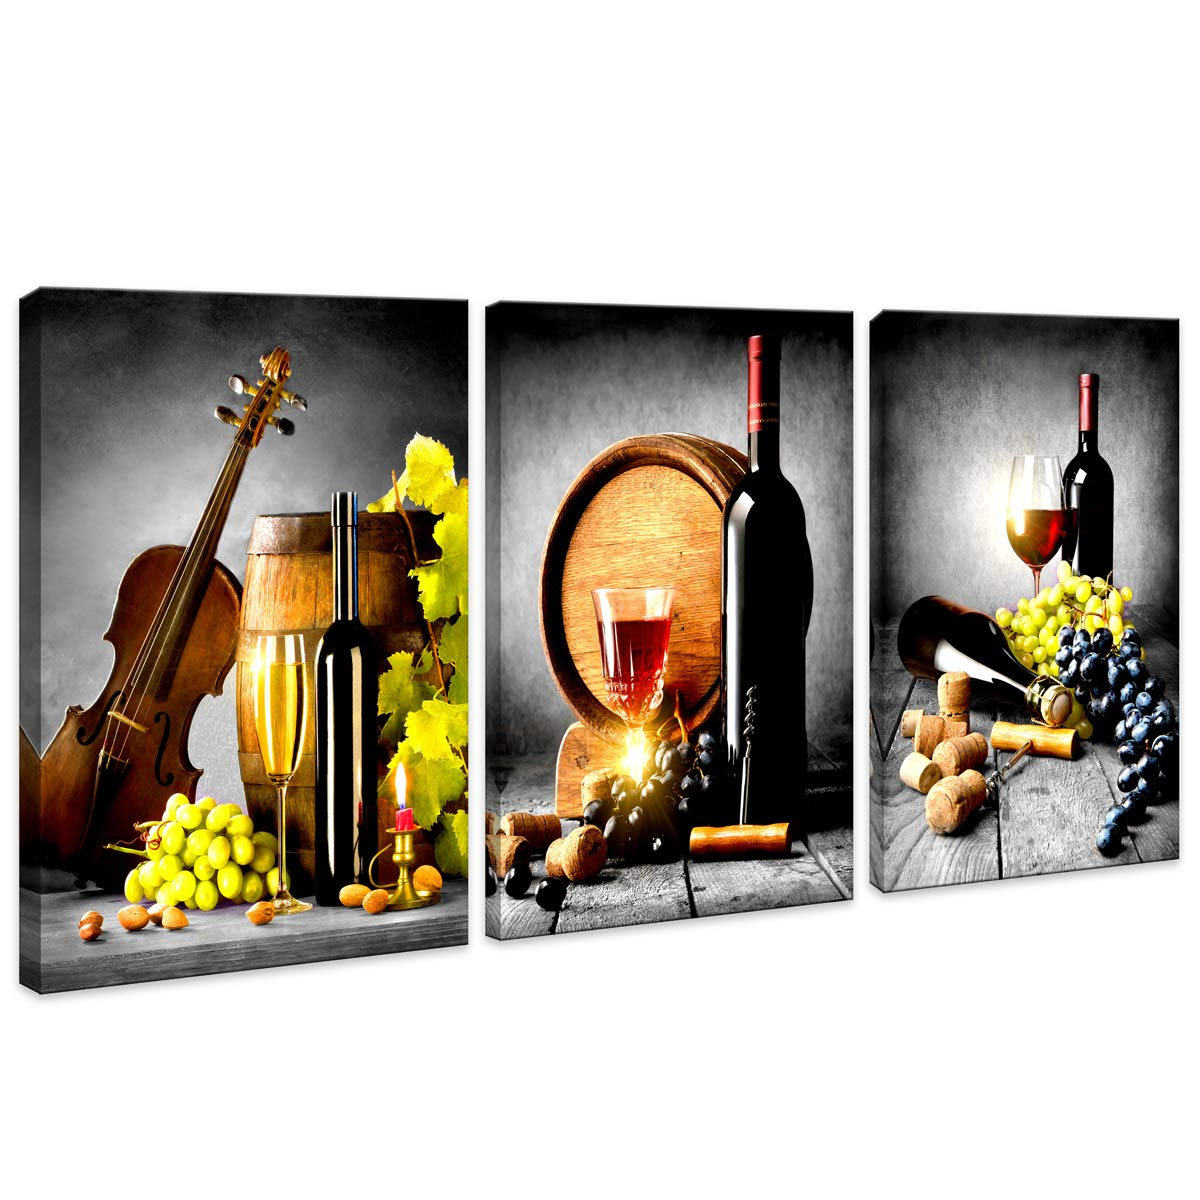 HUADAOART Kitchen Wall Art Decor Canvas Artwork Fruits Grapes Wine Bottle Foods Canvas Painting - 3 Pieces Canvas Art Contemporary Nature Pictures for Dining Room Wall Decor Home Decoration 16x24inch